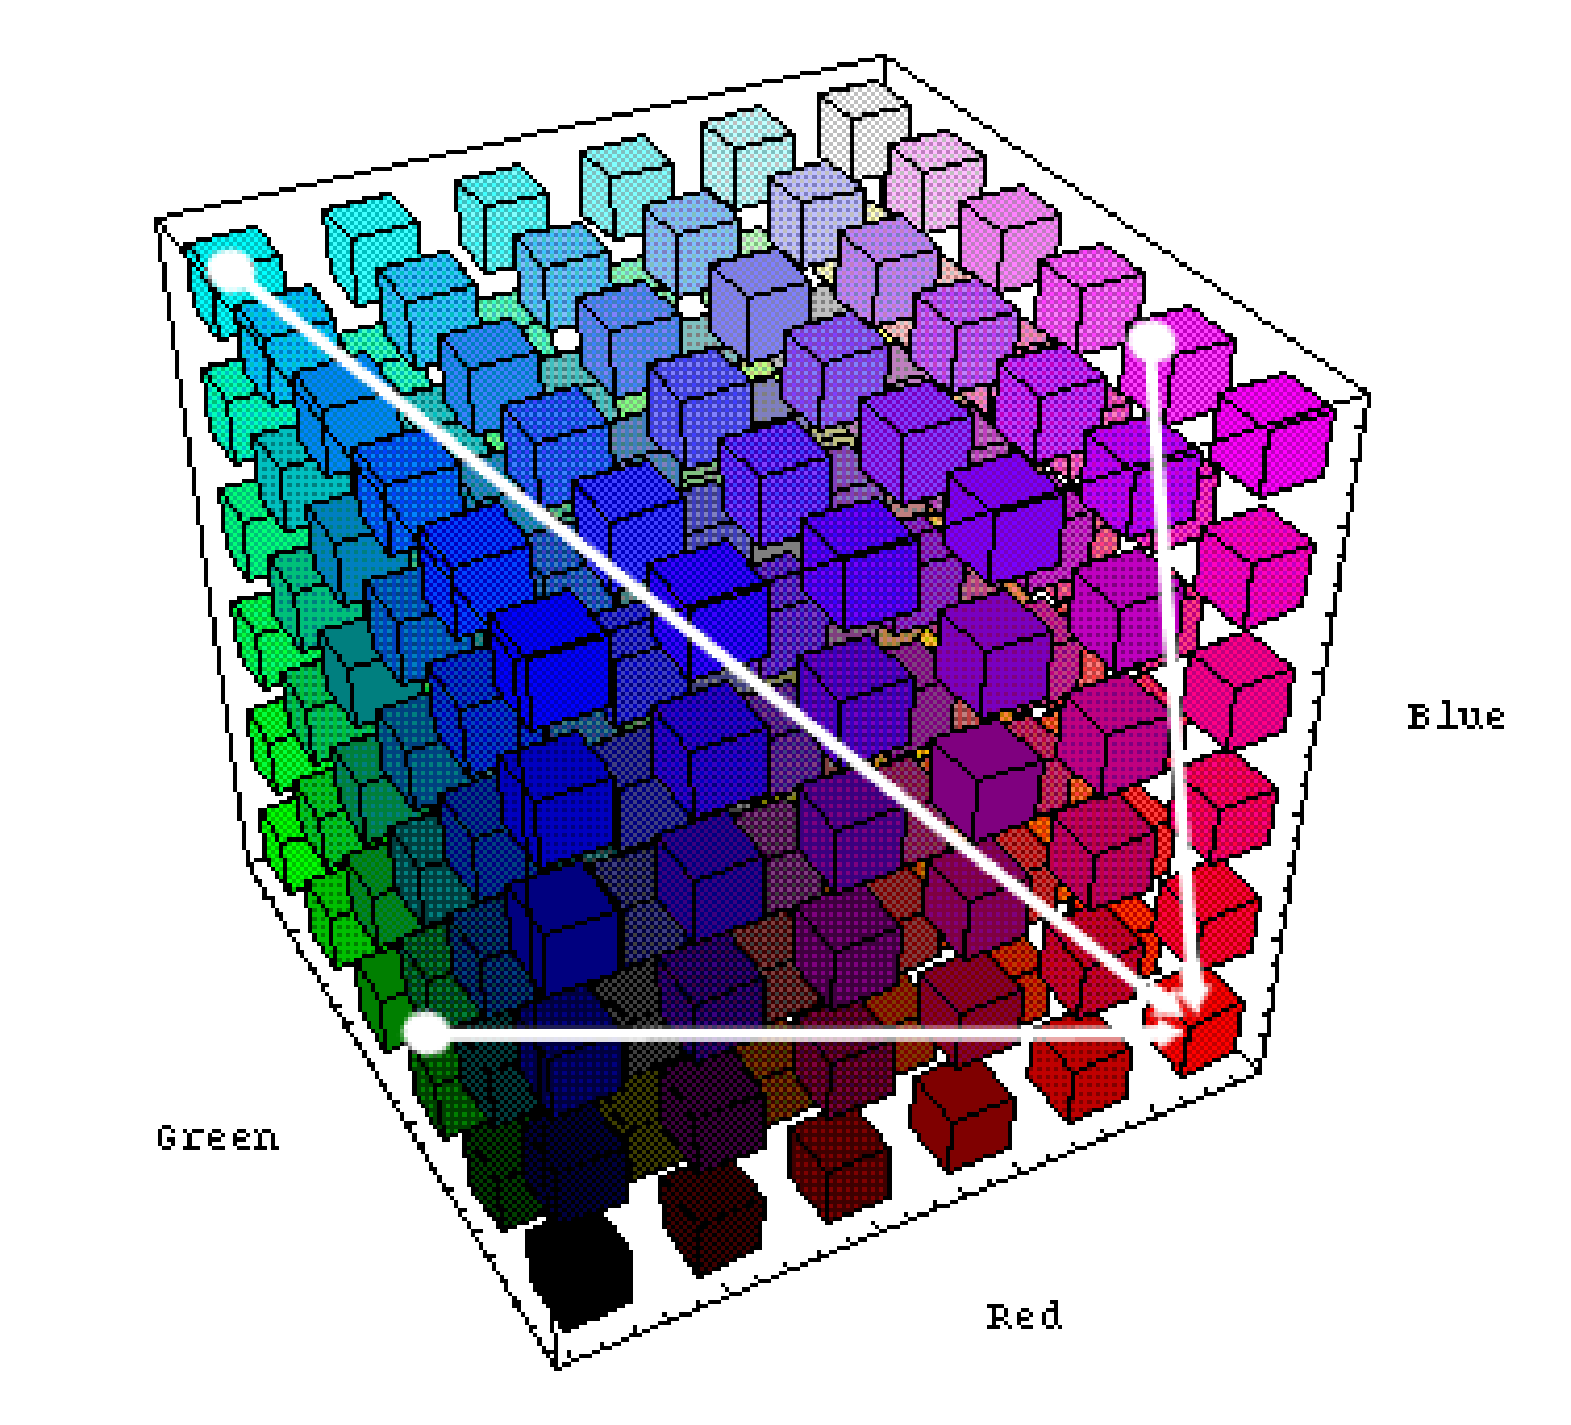 RGB tridimensional color model.